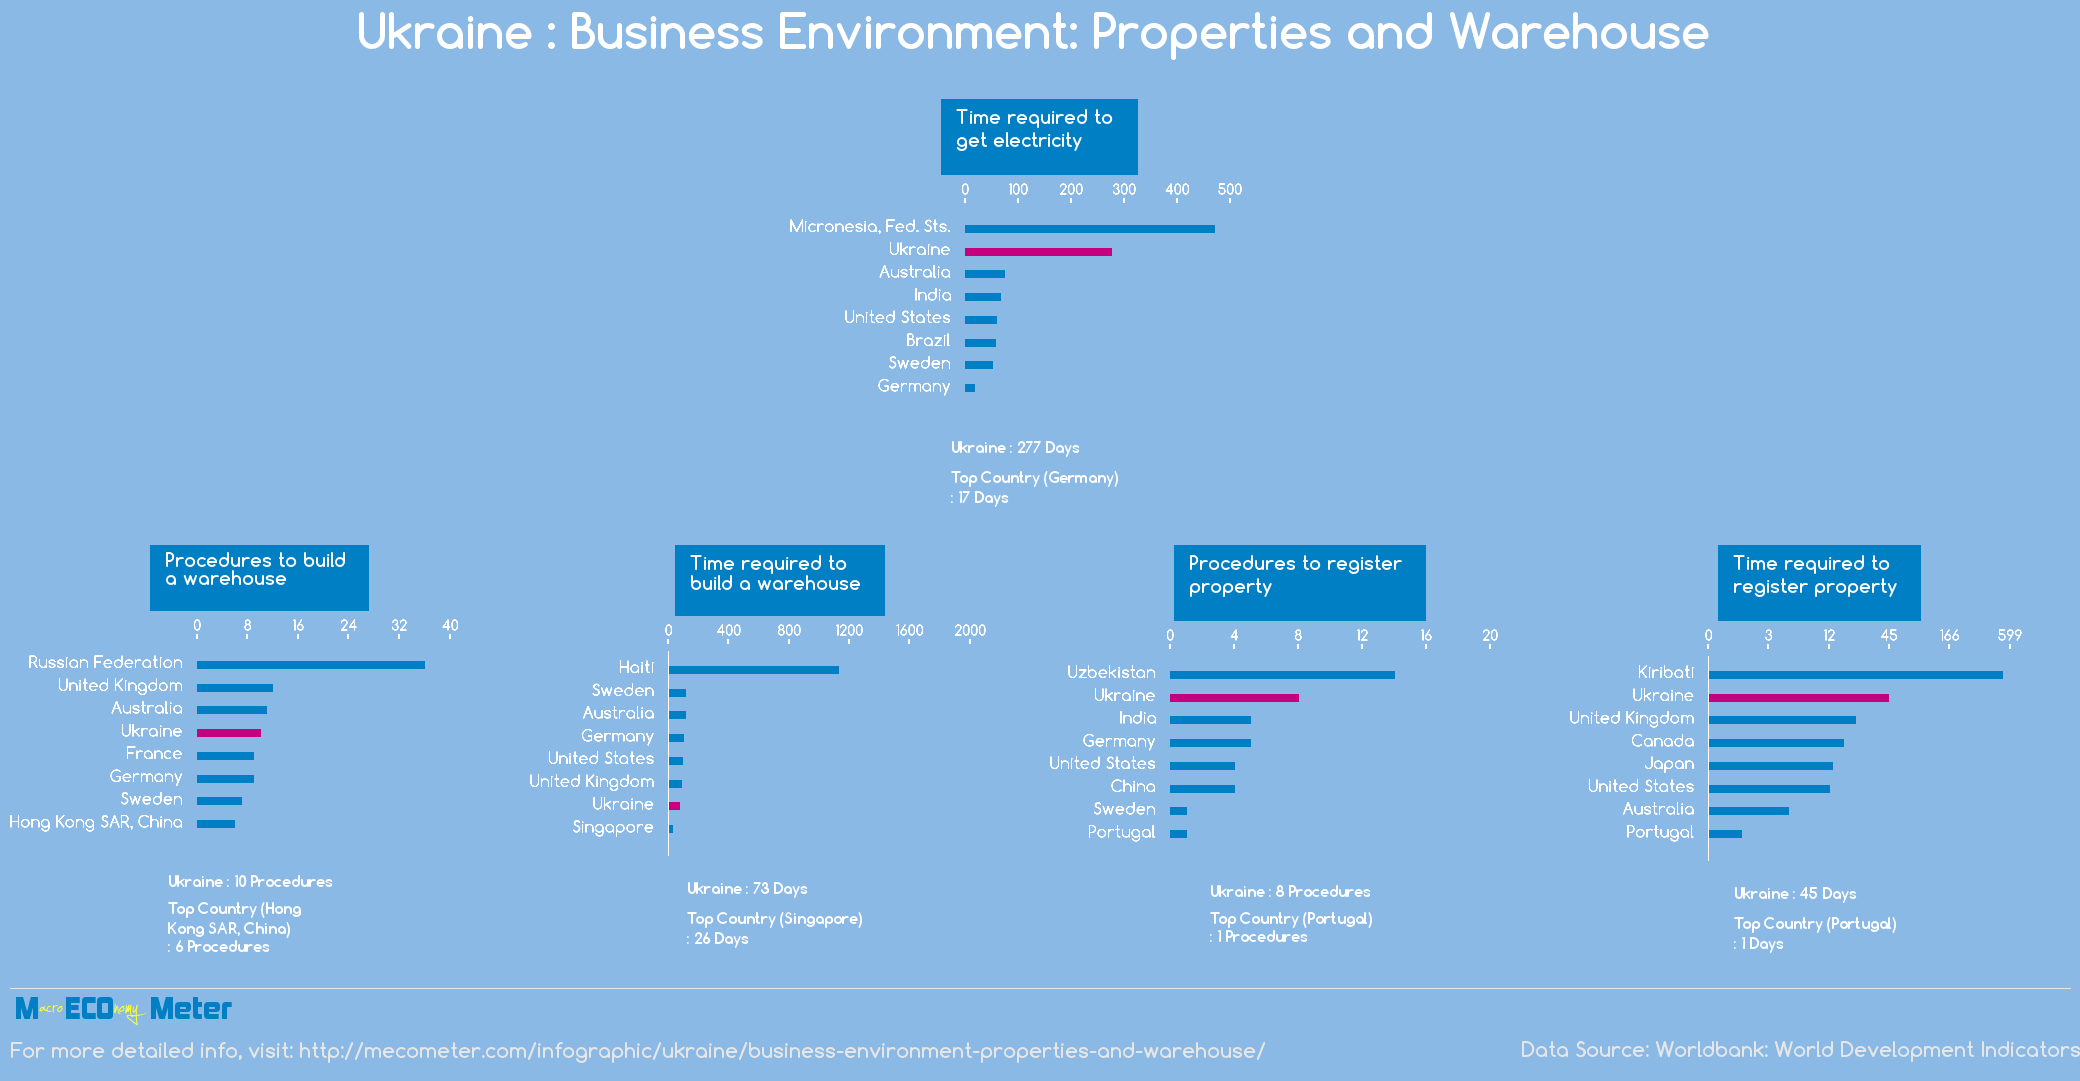 Ukraine : Business Environment: Properties and Warehouse